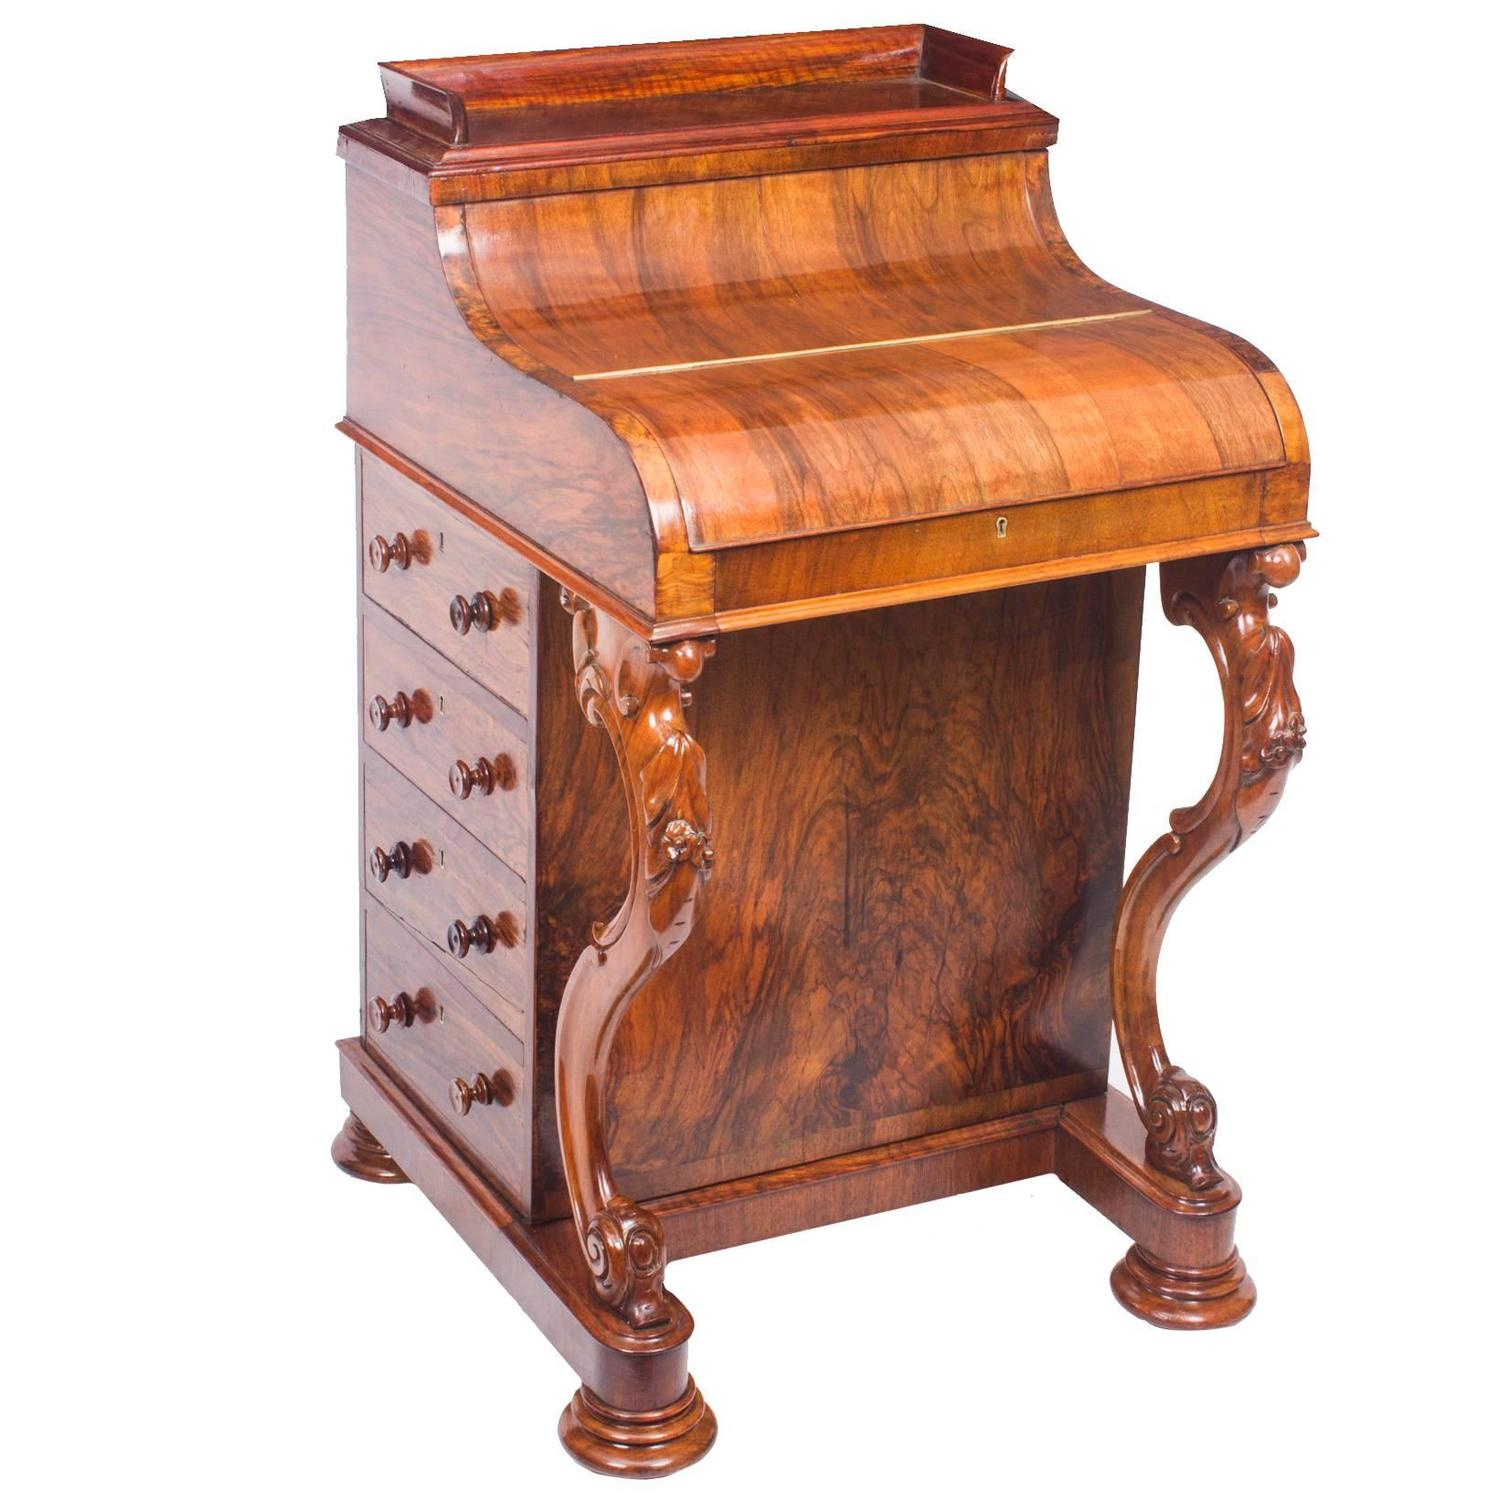 Antique Burr Walnut Pop Up Davenport Desk, Circa 1860 For Sale At 1stdibs